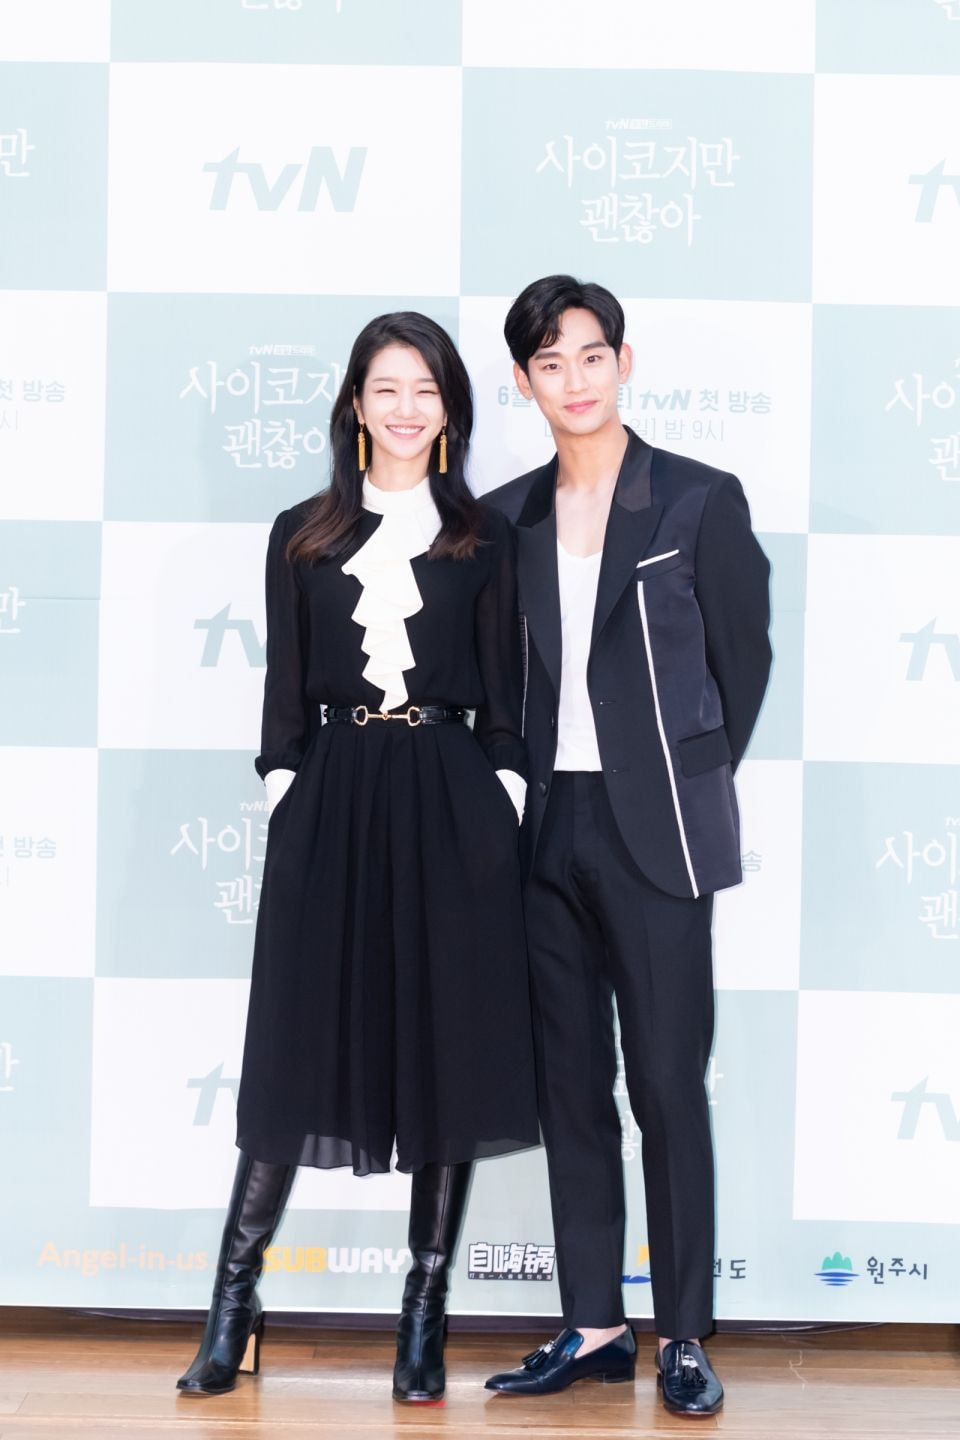 Seo Ye Ji and Kim Soo Hyun